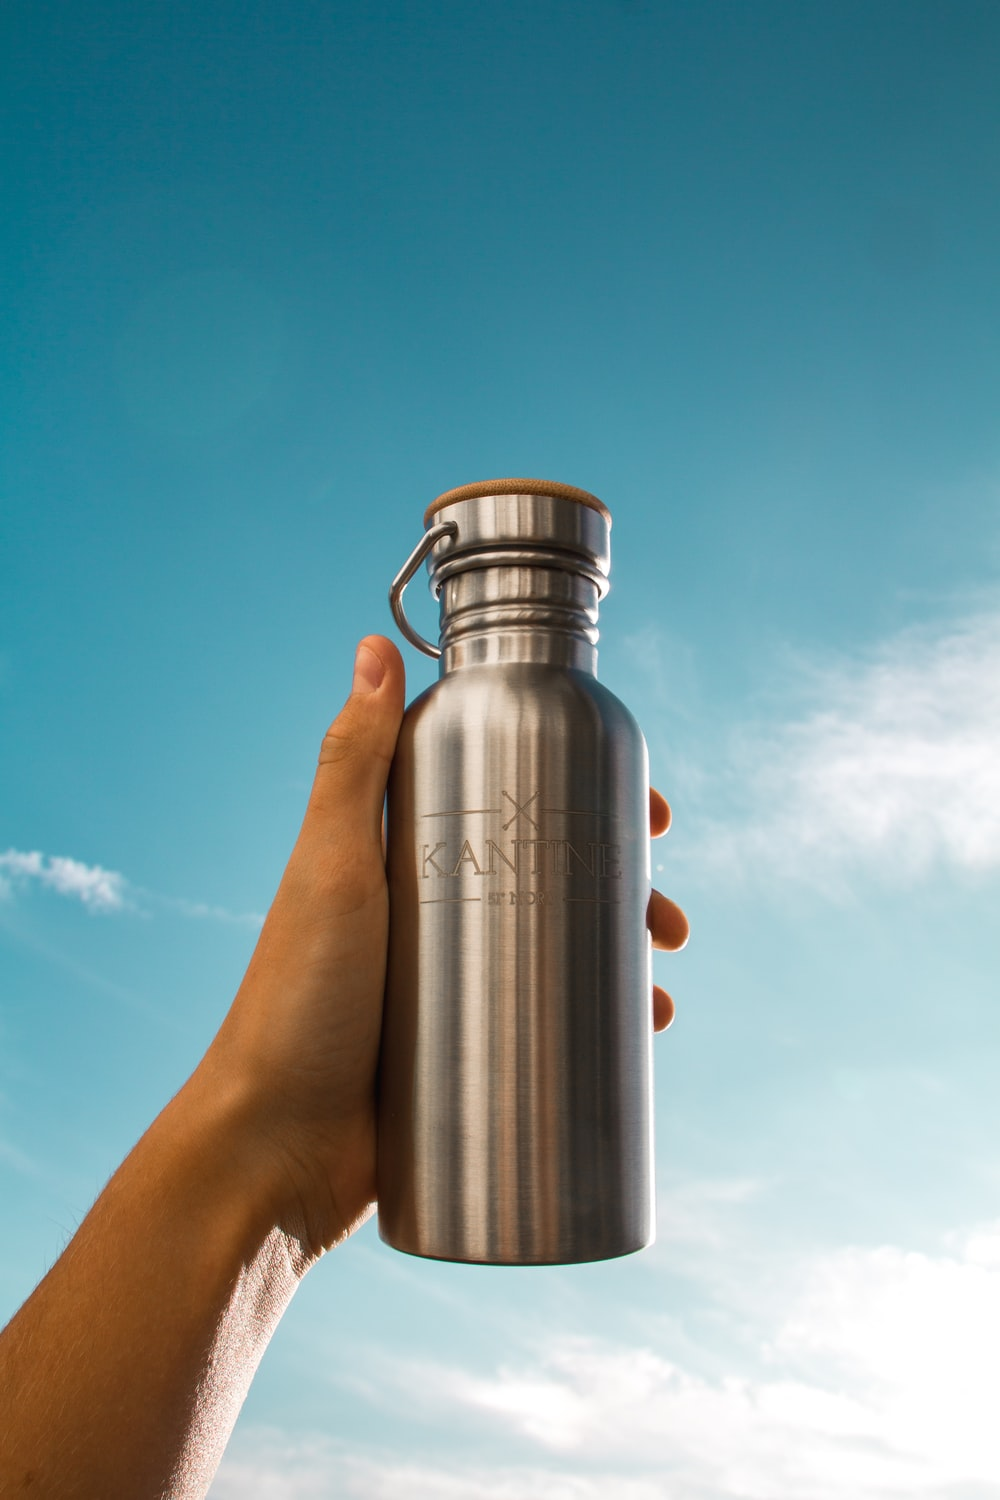 stainless steel vacuum flask on persons hand